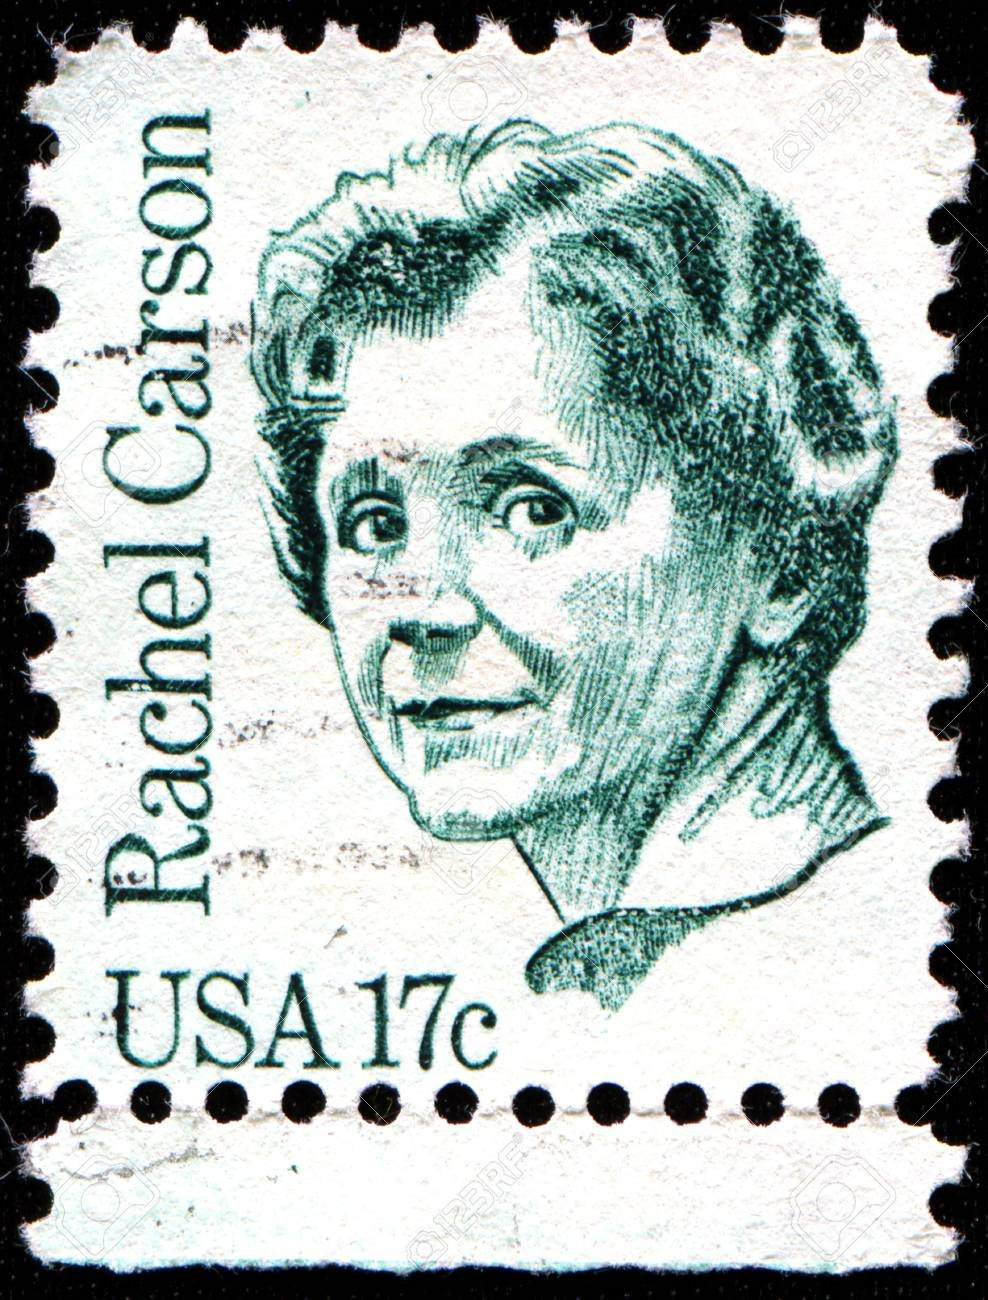 The Rachel Carson stamp was introduced in 1981 during the popular Great Americans Series honoring special Americans from all walks of life and also honoring them for their contributions to society and their fellow man.